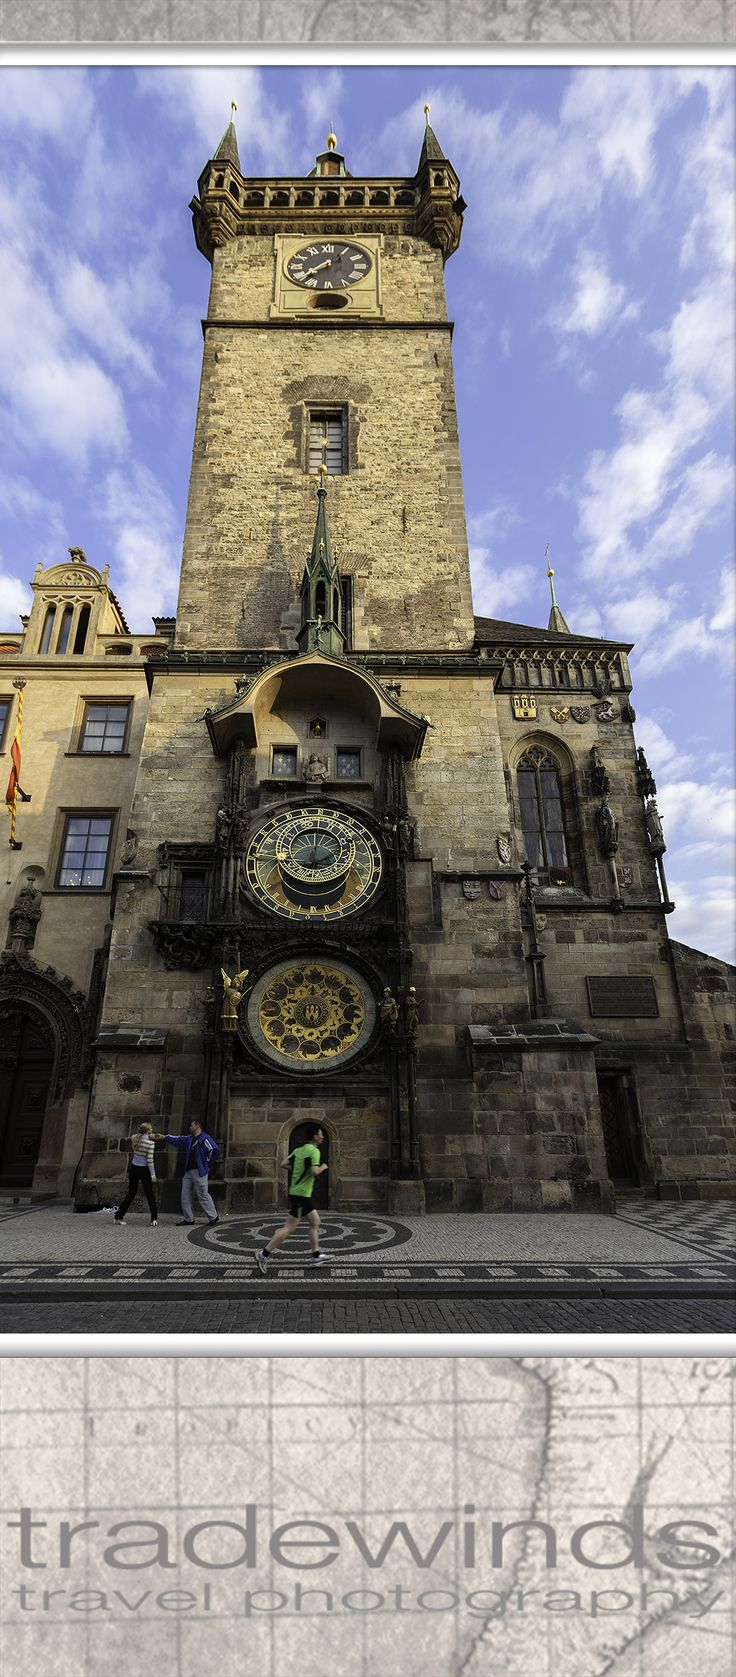 A couple dances in front of the old famous clock tower in Prague